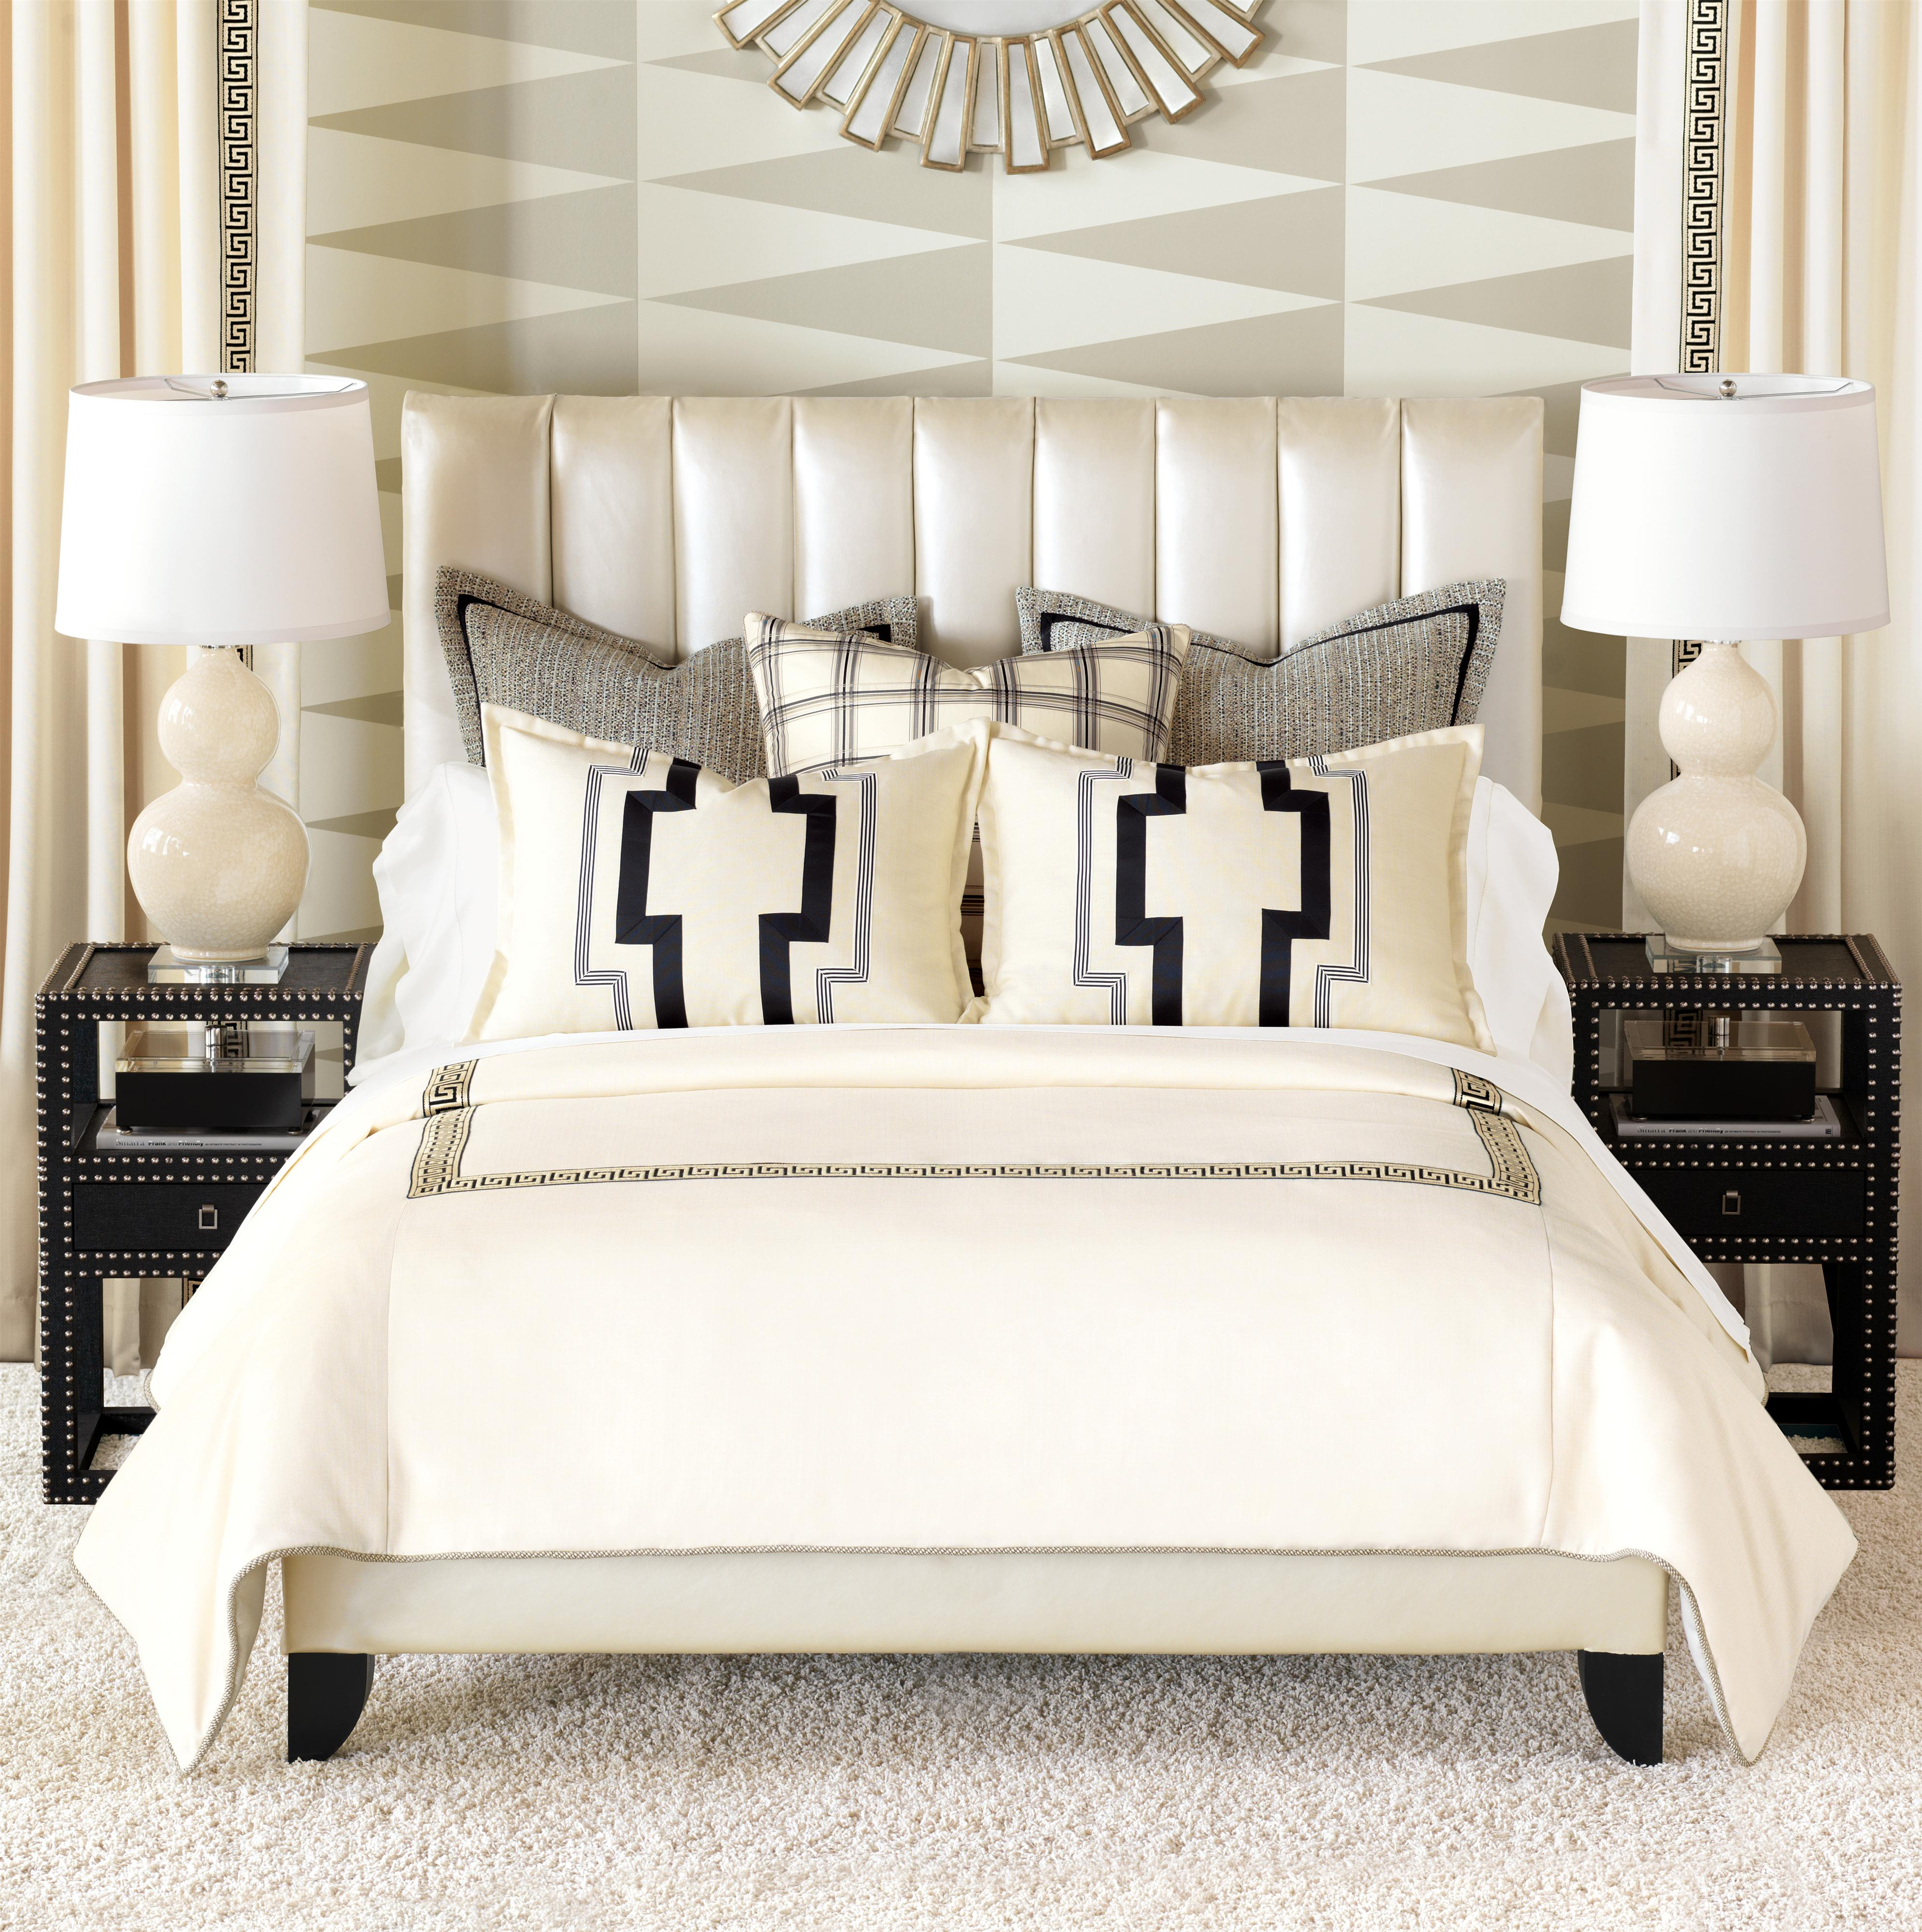 Abernathy King Hand-Tacked Comforter by Eastern Accents at Alison Craig Home Furnishings